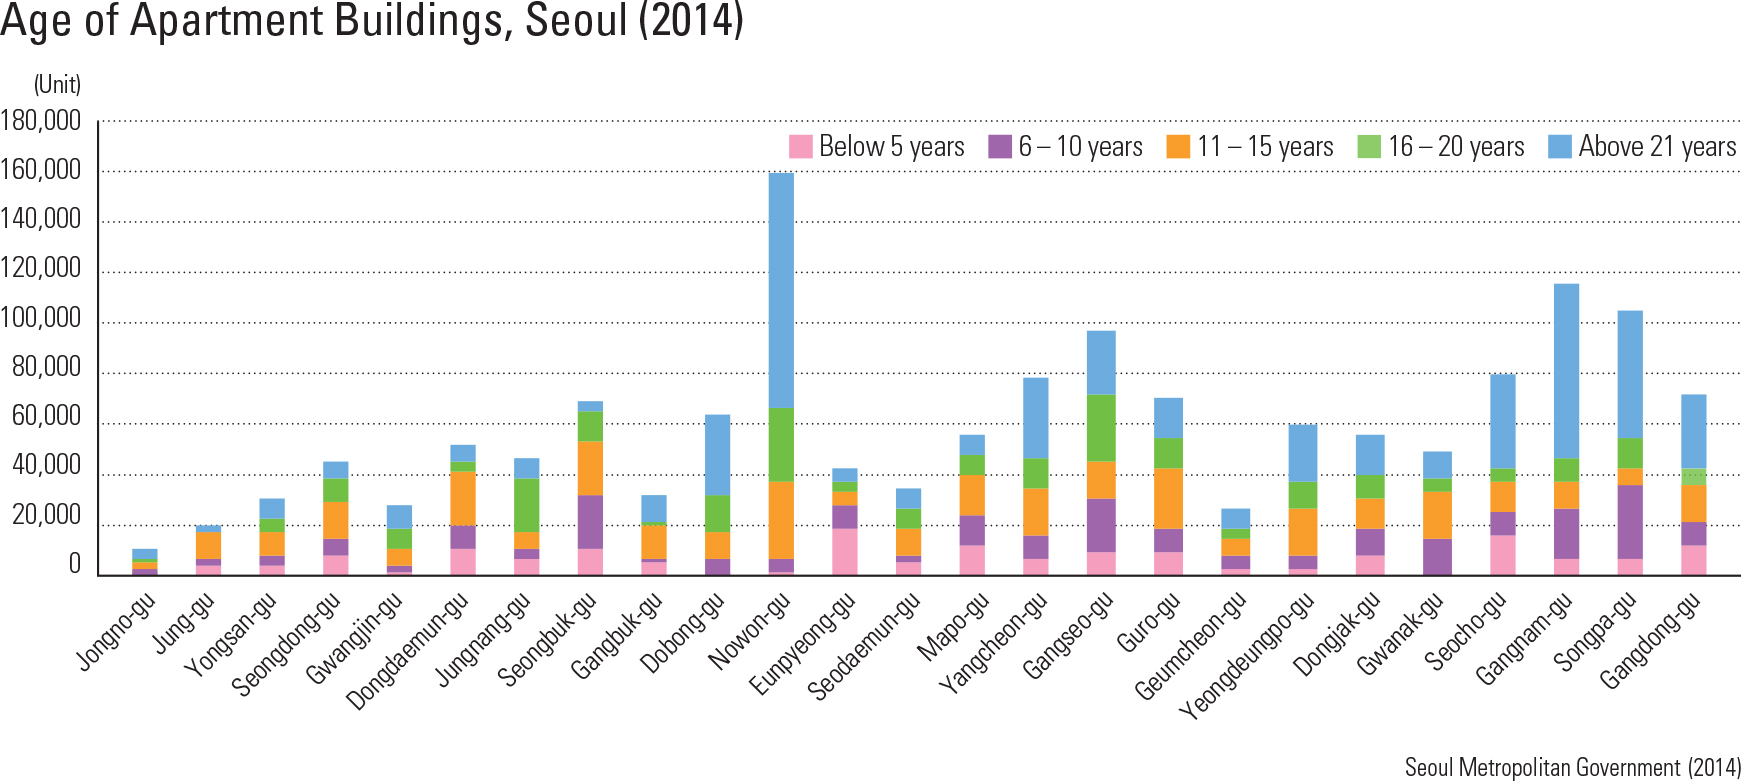 Age of Apartment Buildings, Seoul (2014)